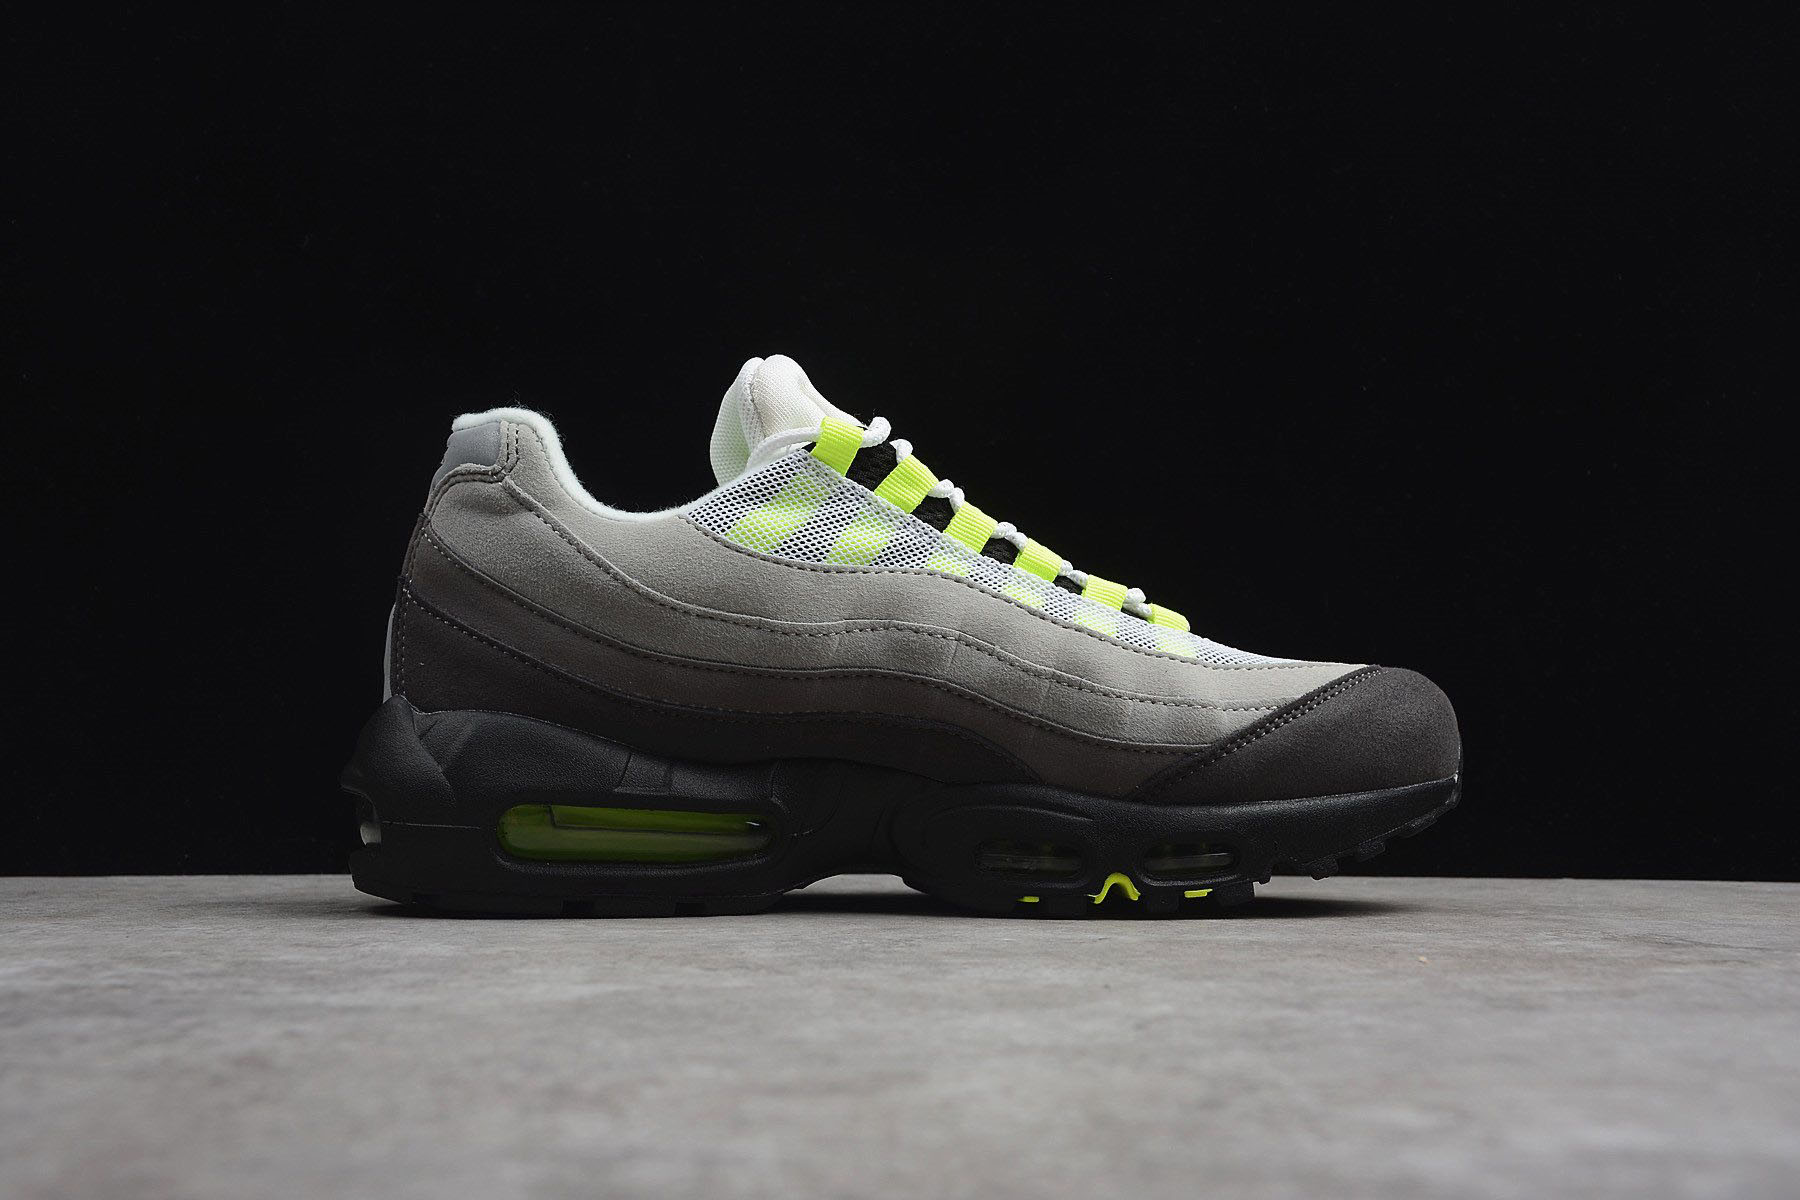 lowest price 6050d 2756e Nike Air Max 95 OG Neon Black Volt-Medium Ash-Dark Pewter 554970 ...